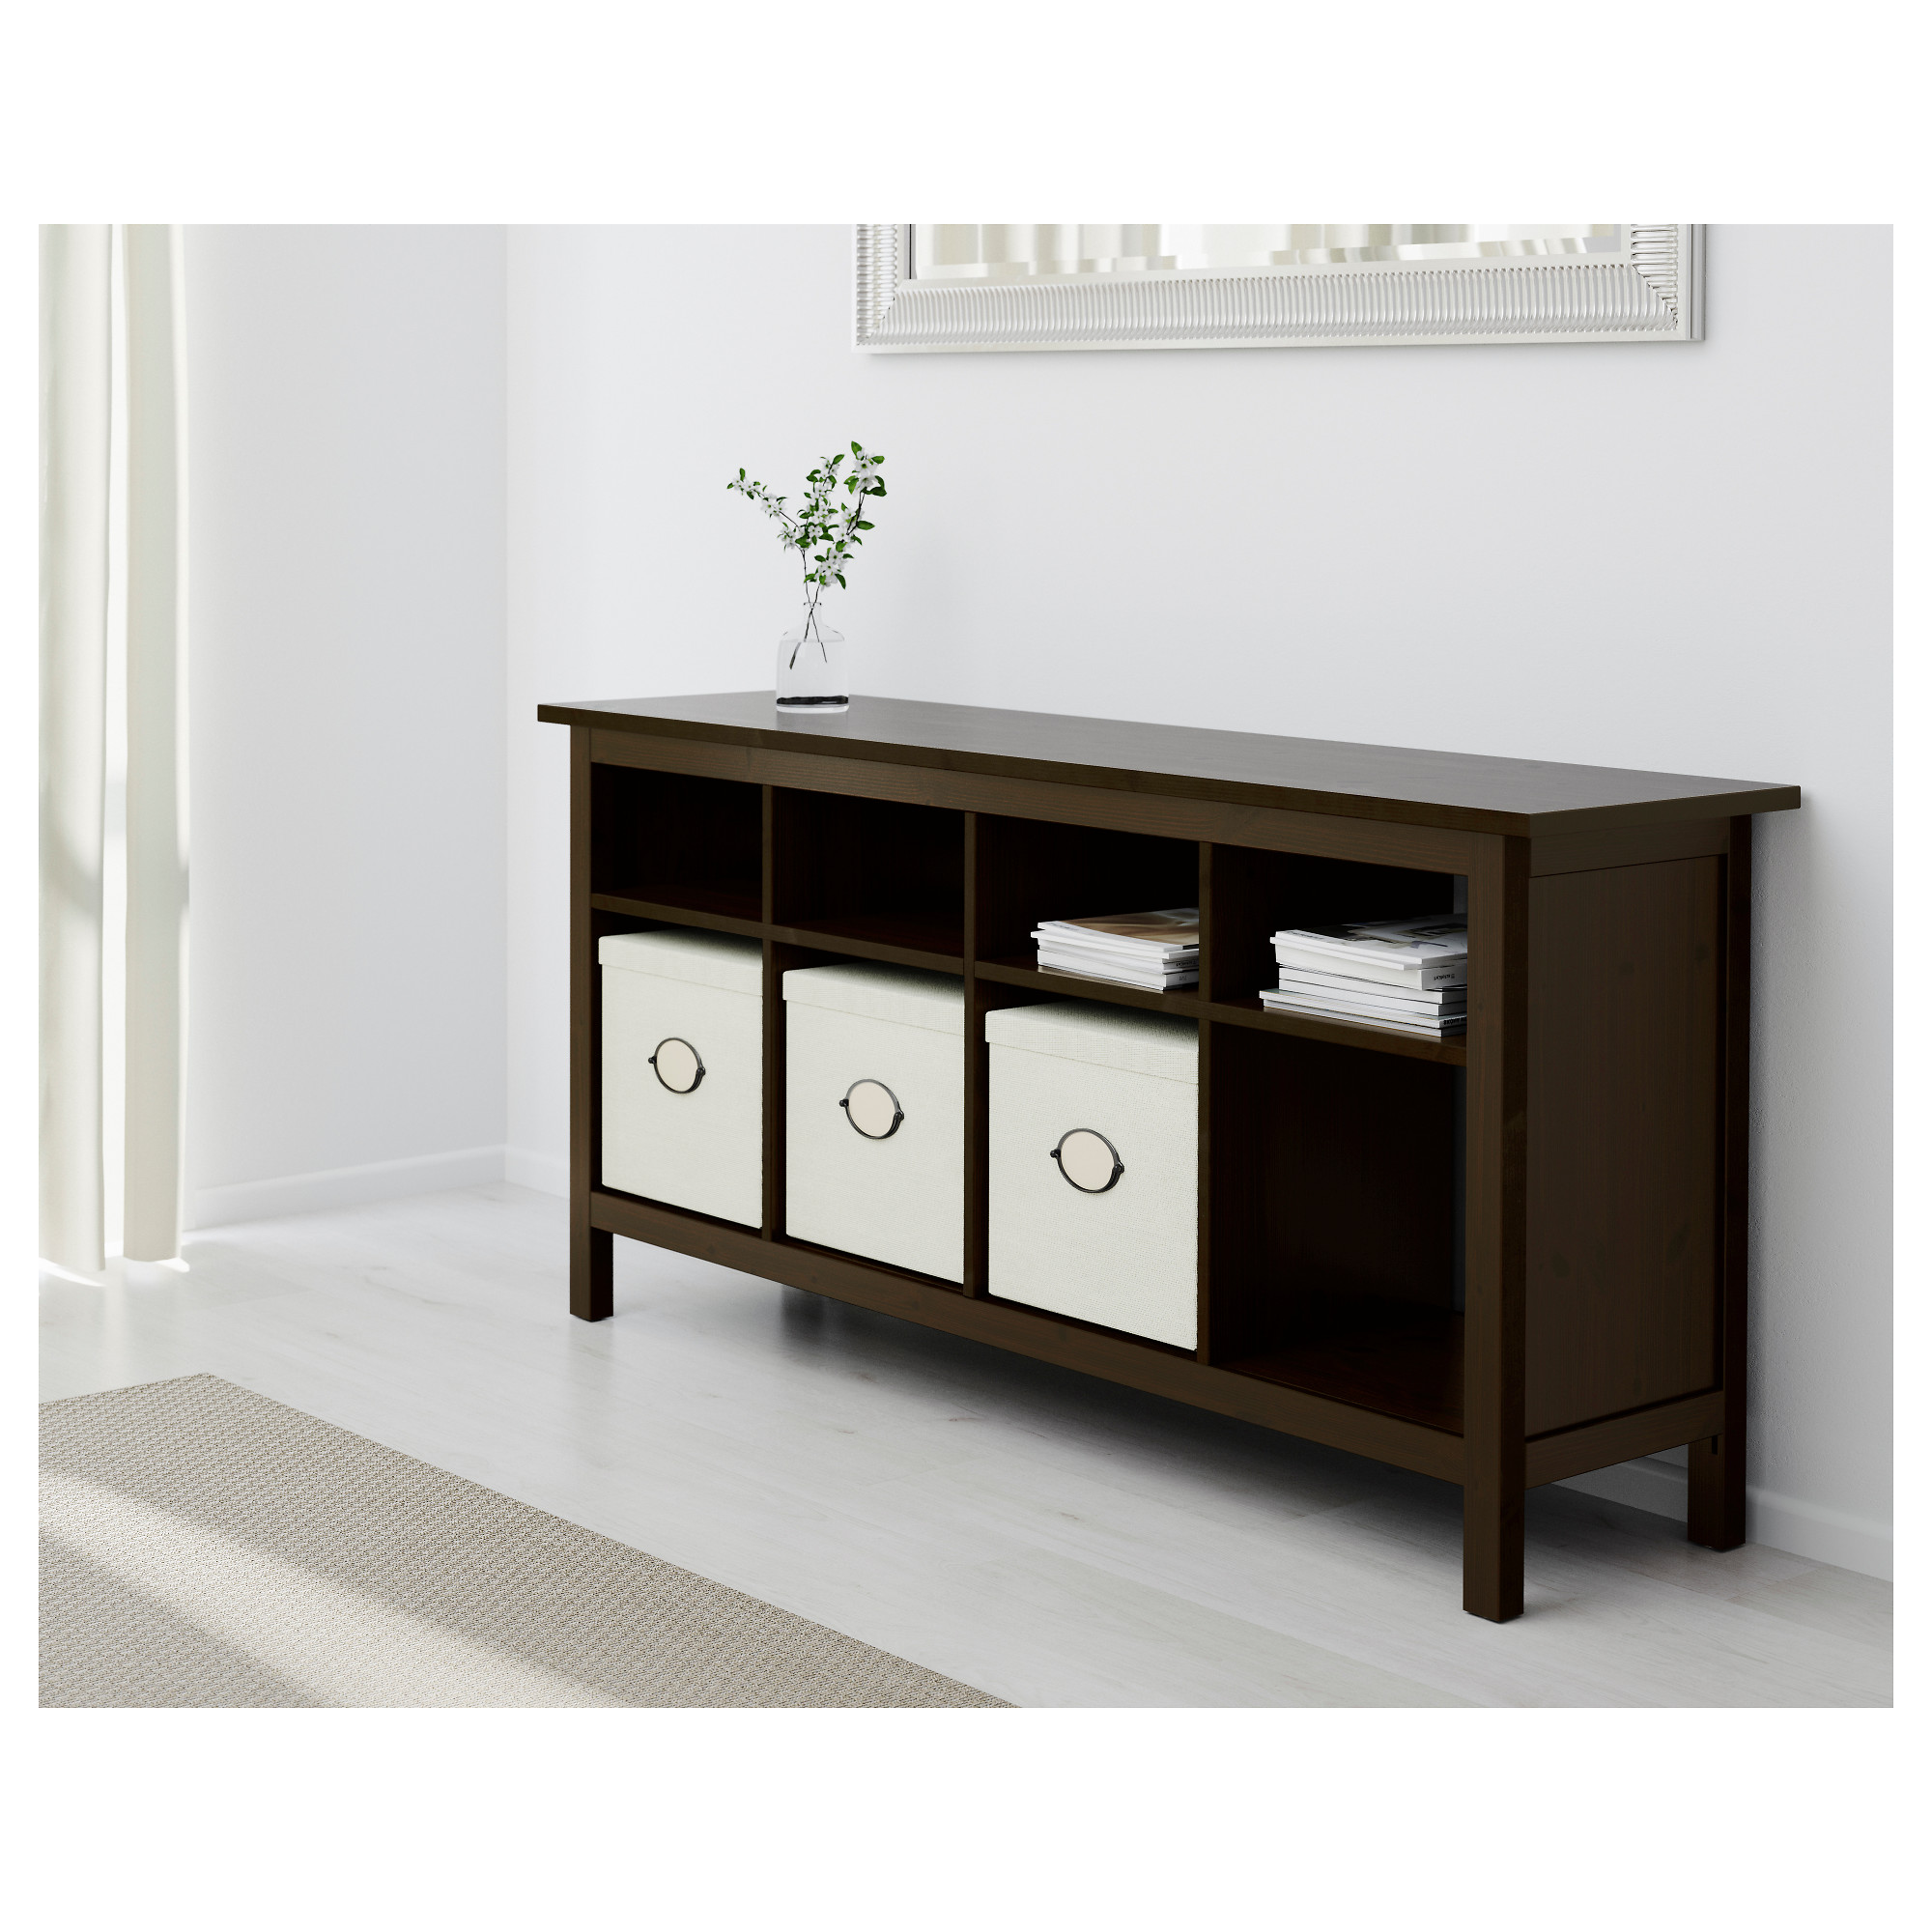 sofa table with storage ikea. Sofa Table With Storage Ikea L